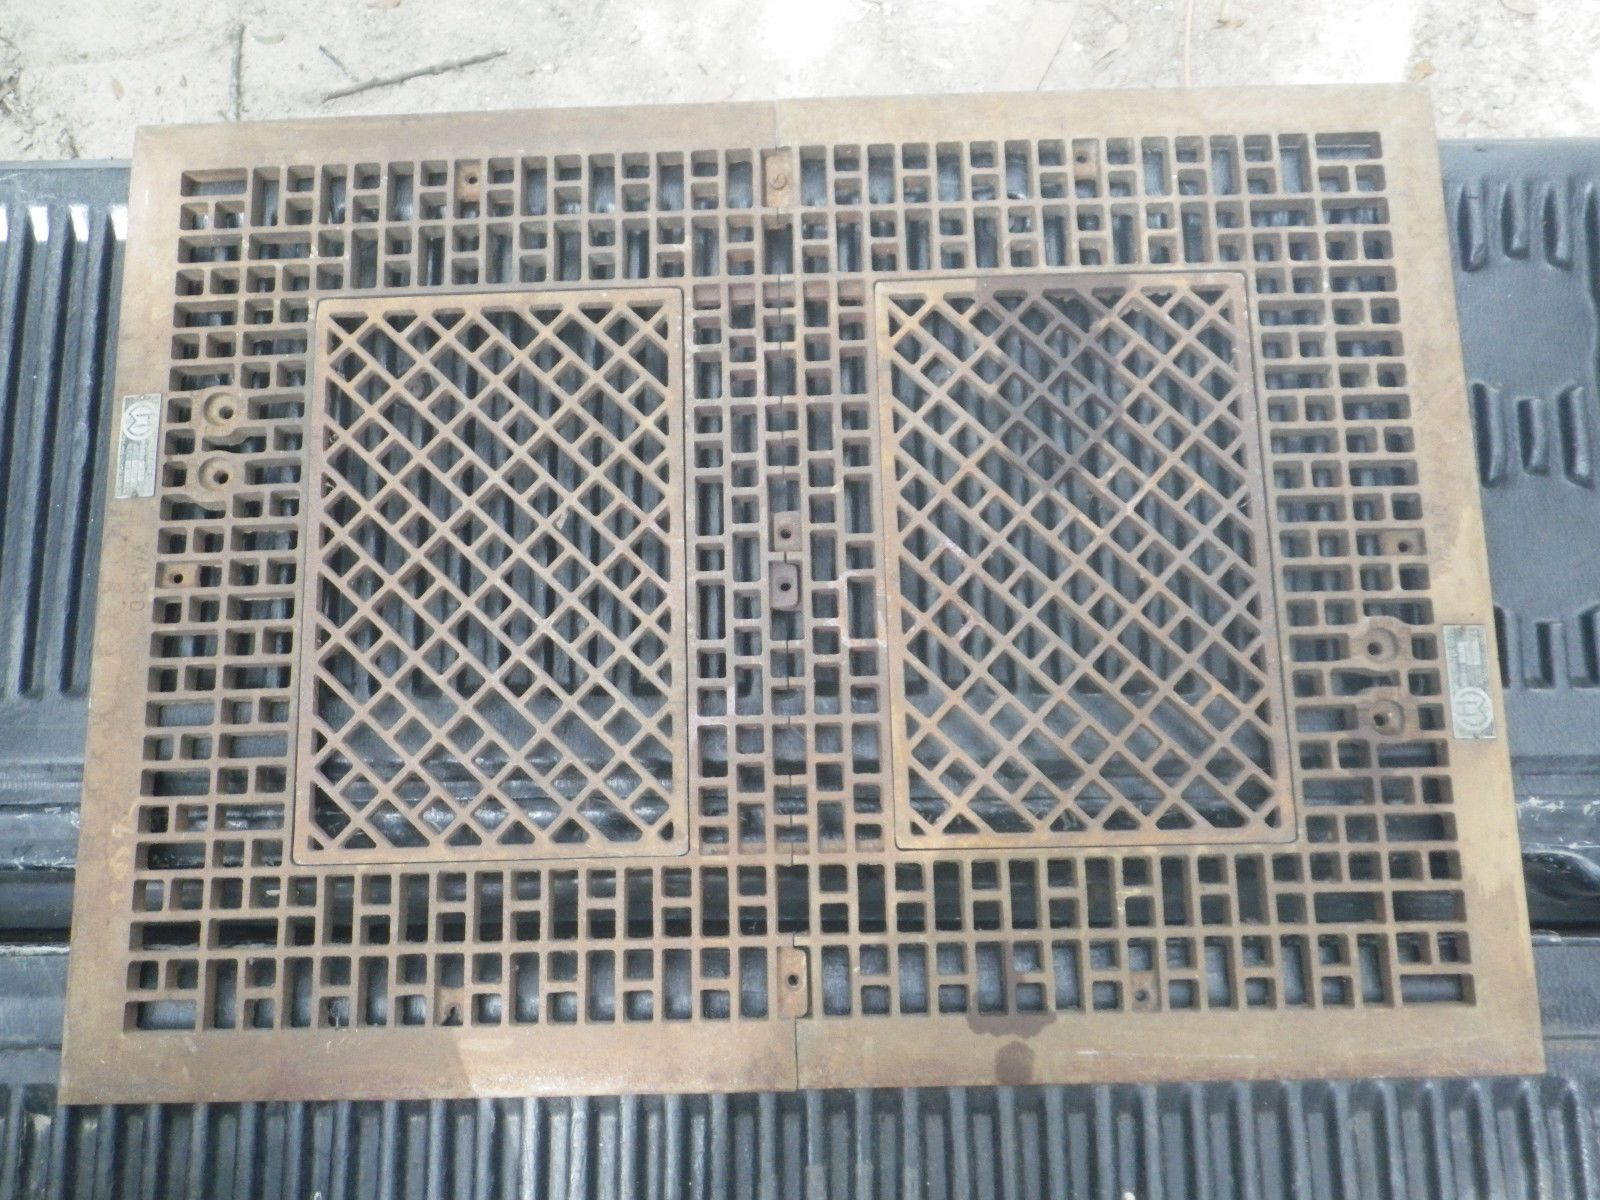 Antique Vintage Ward Cast Iron Floor Furnace Grate 38 3 4 X 28 3 8 Ebay Floor Furnace Furnace Antiques